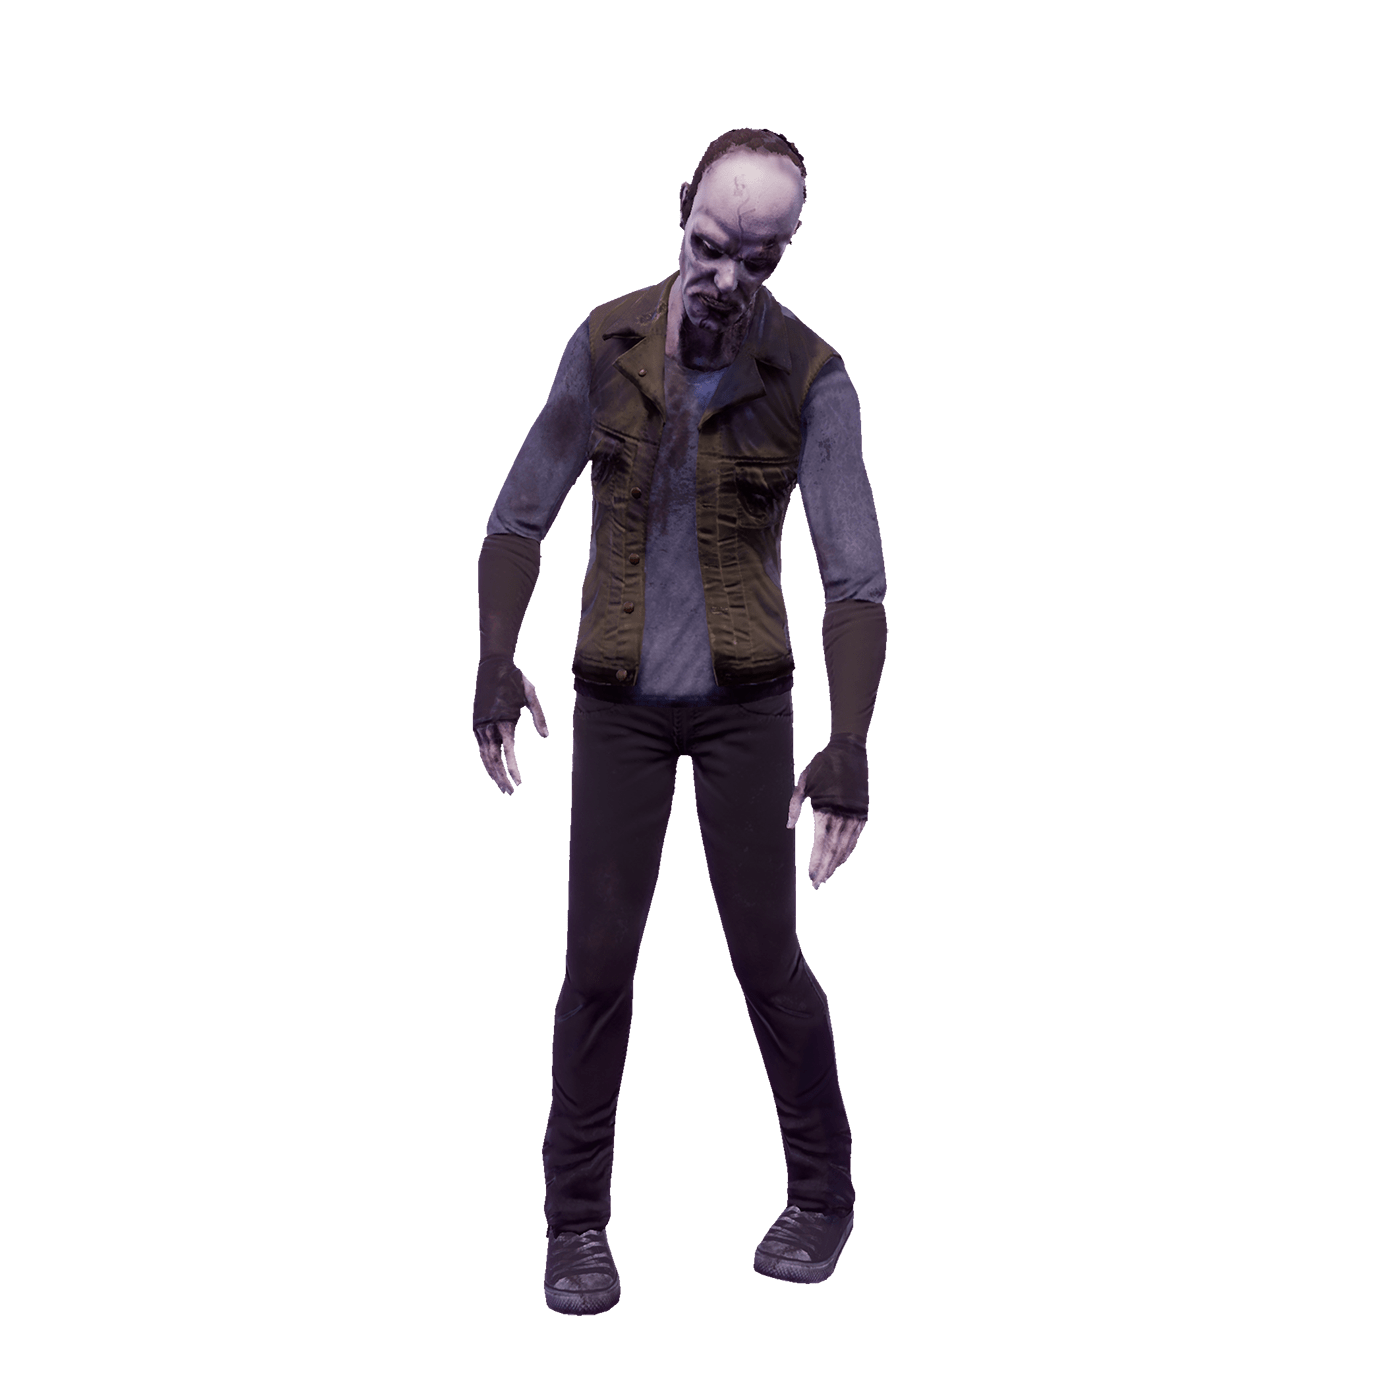 http://trio-tech.com/app/uploads/2017/08/ftwd_survival_web-1-300x296.png